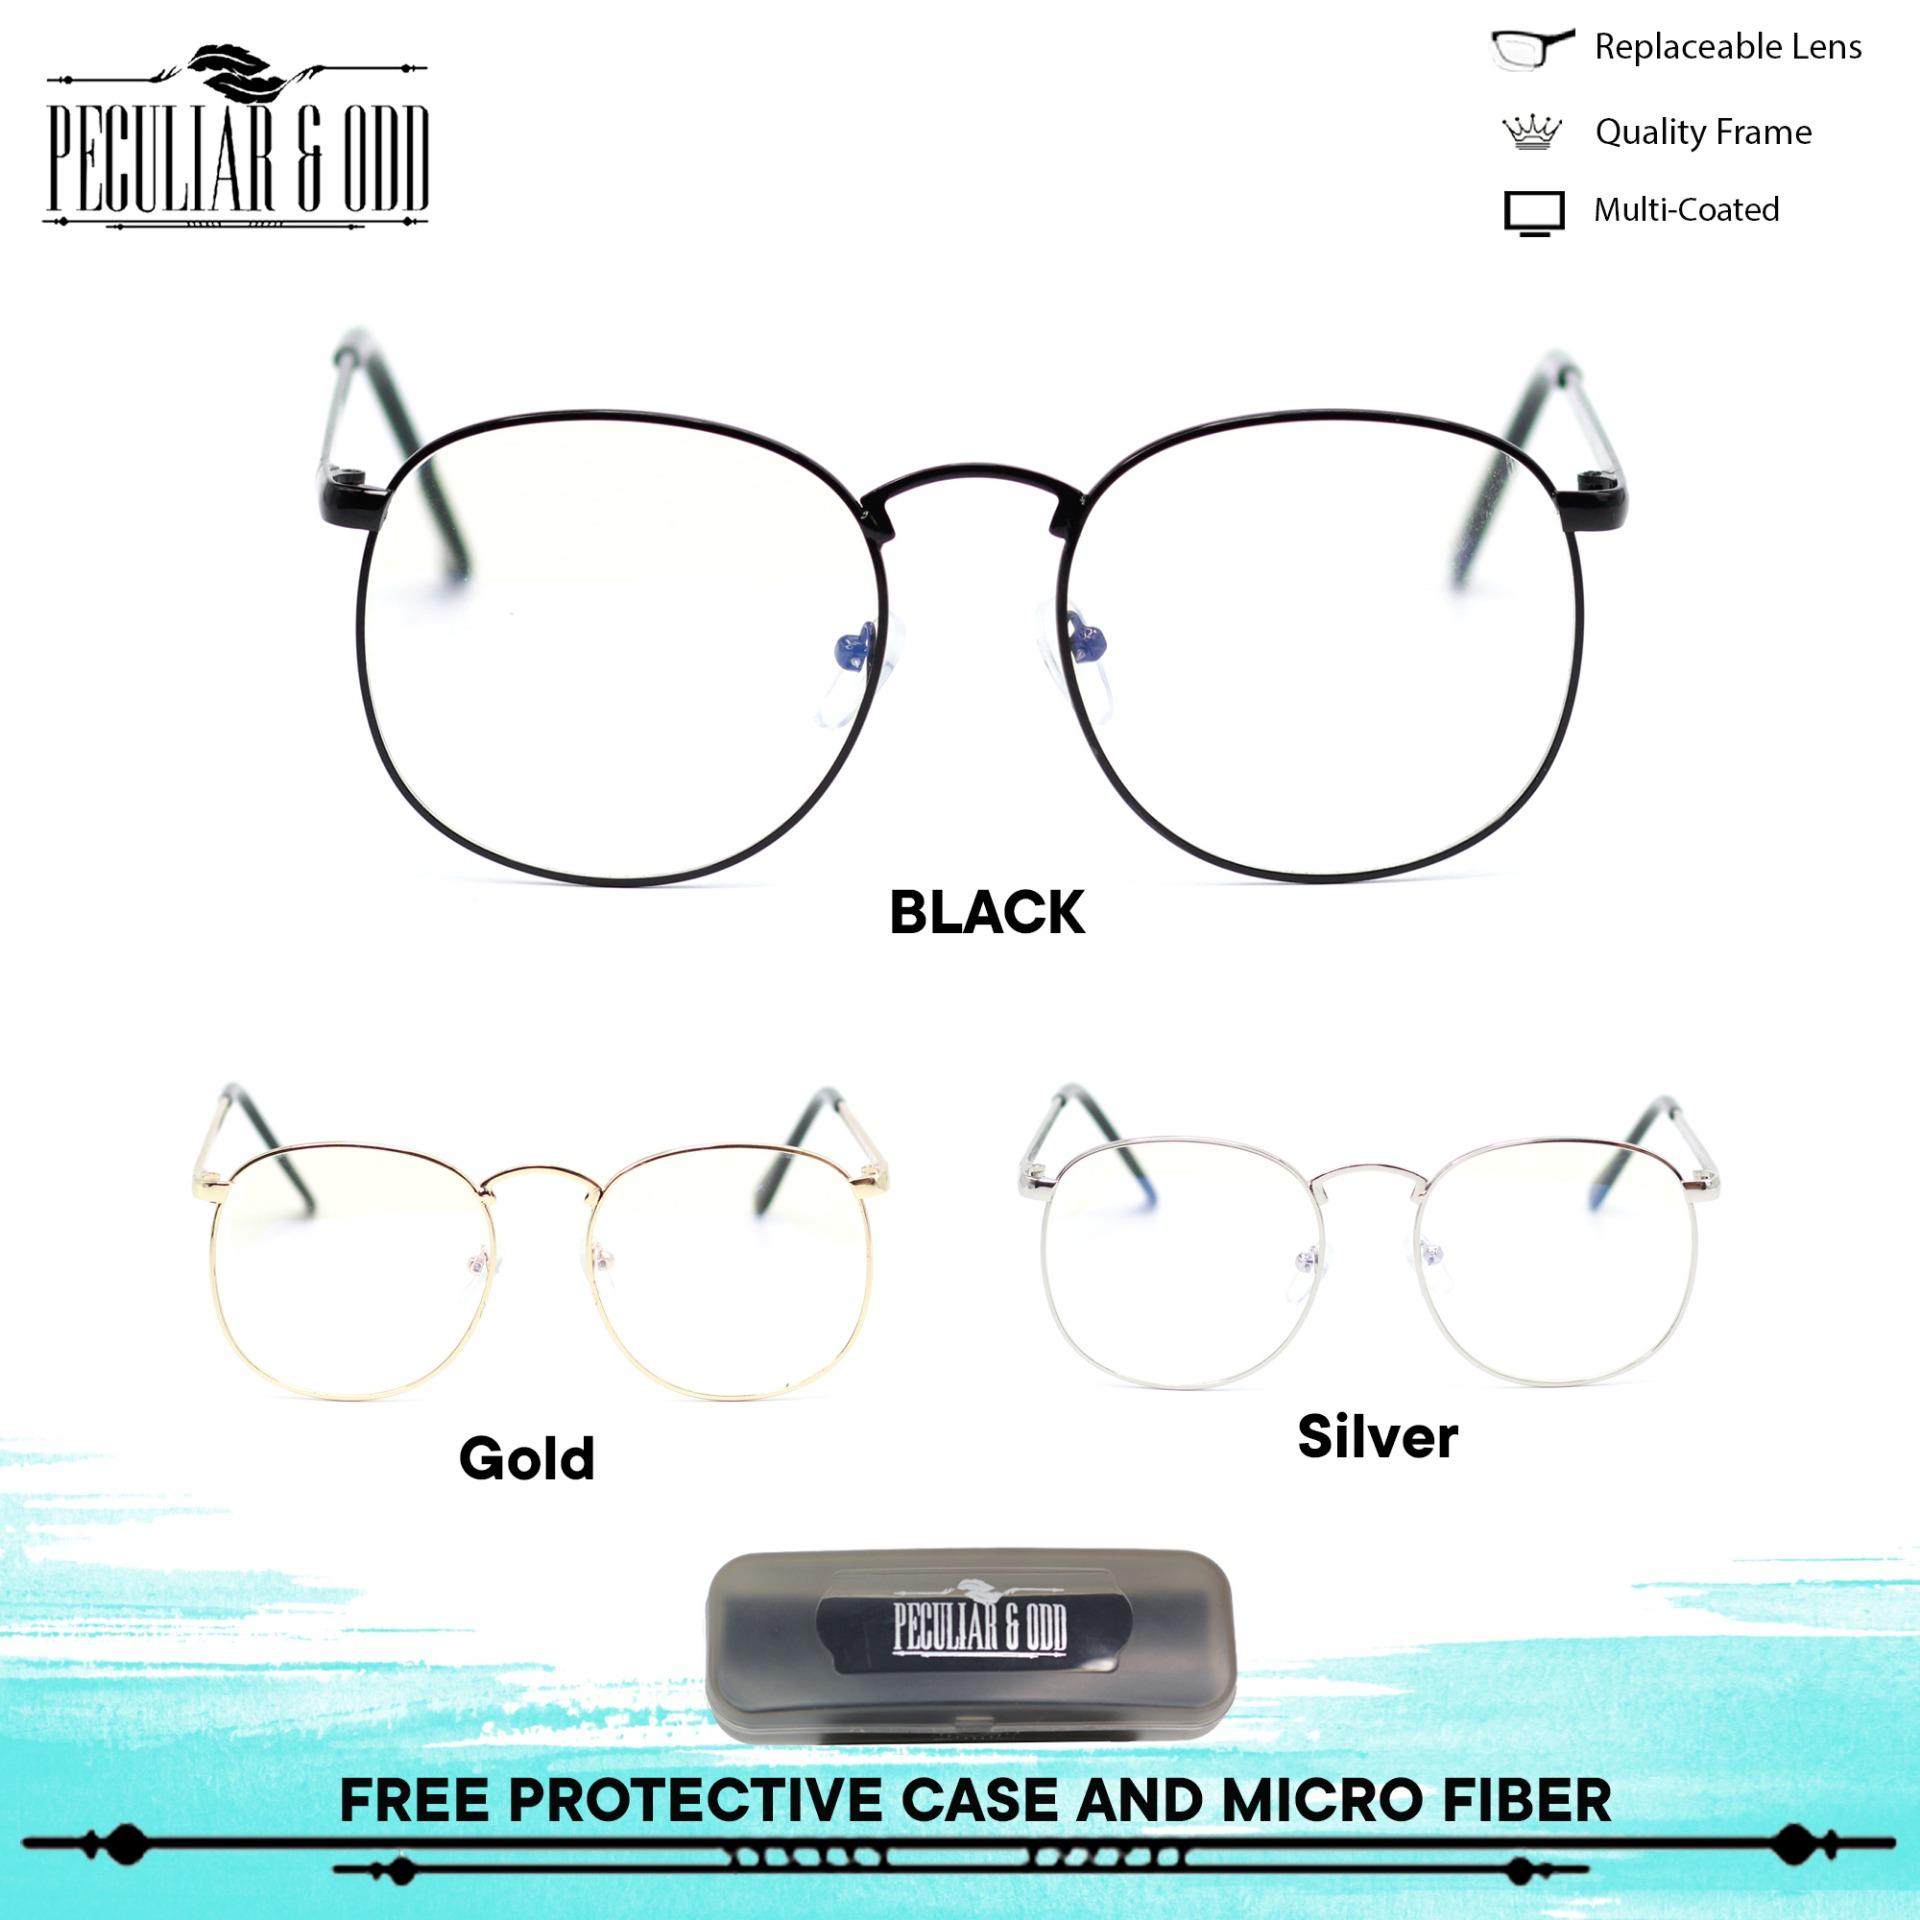 623b9d3658 Peculiar Round Eyeglasses 8810 Antiradiation Lenses in Thin Metal Frame  Lightweight Replaceable Optical Lens Unisex Eyewear